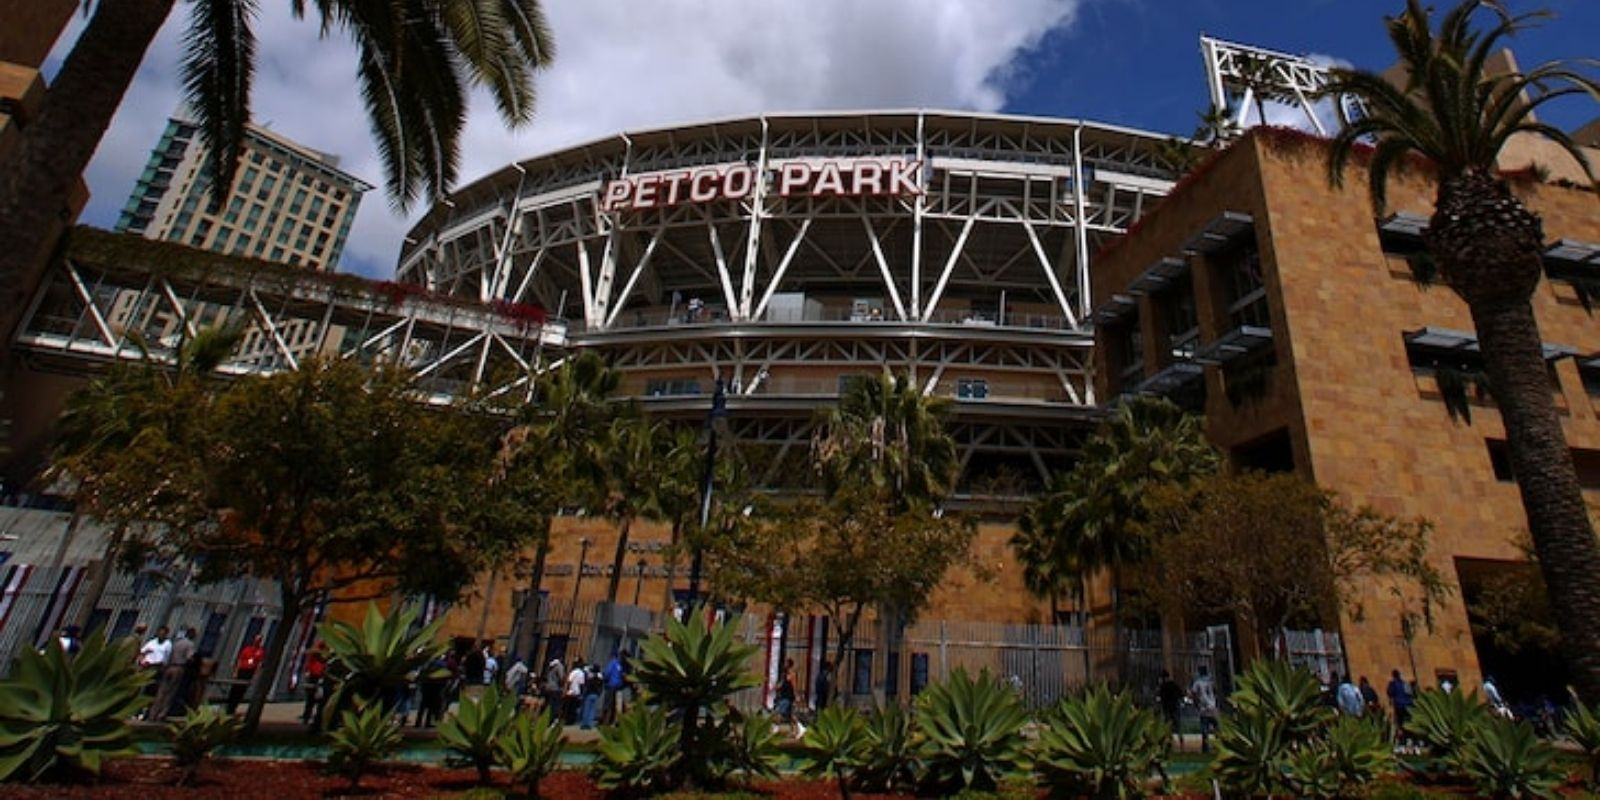 Mother, toddler dead after 'suspicious' fall at Petco Park before Padres game